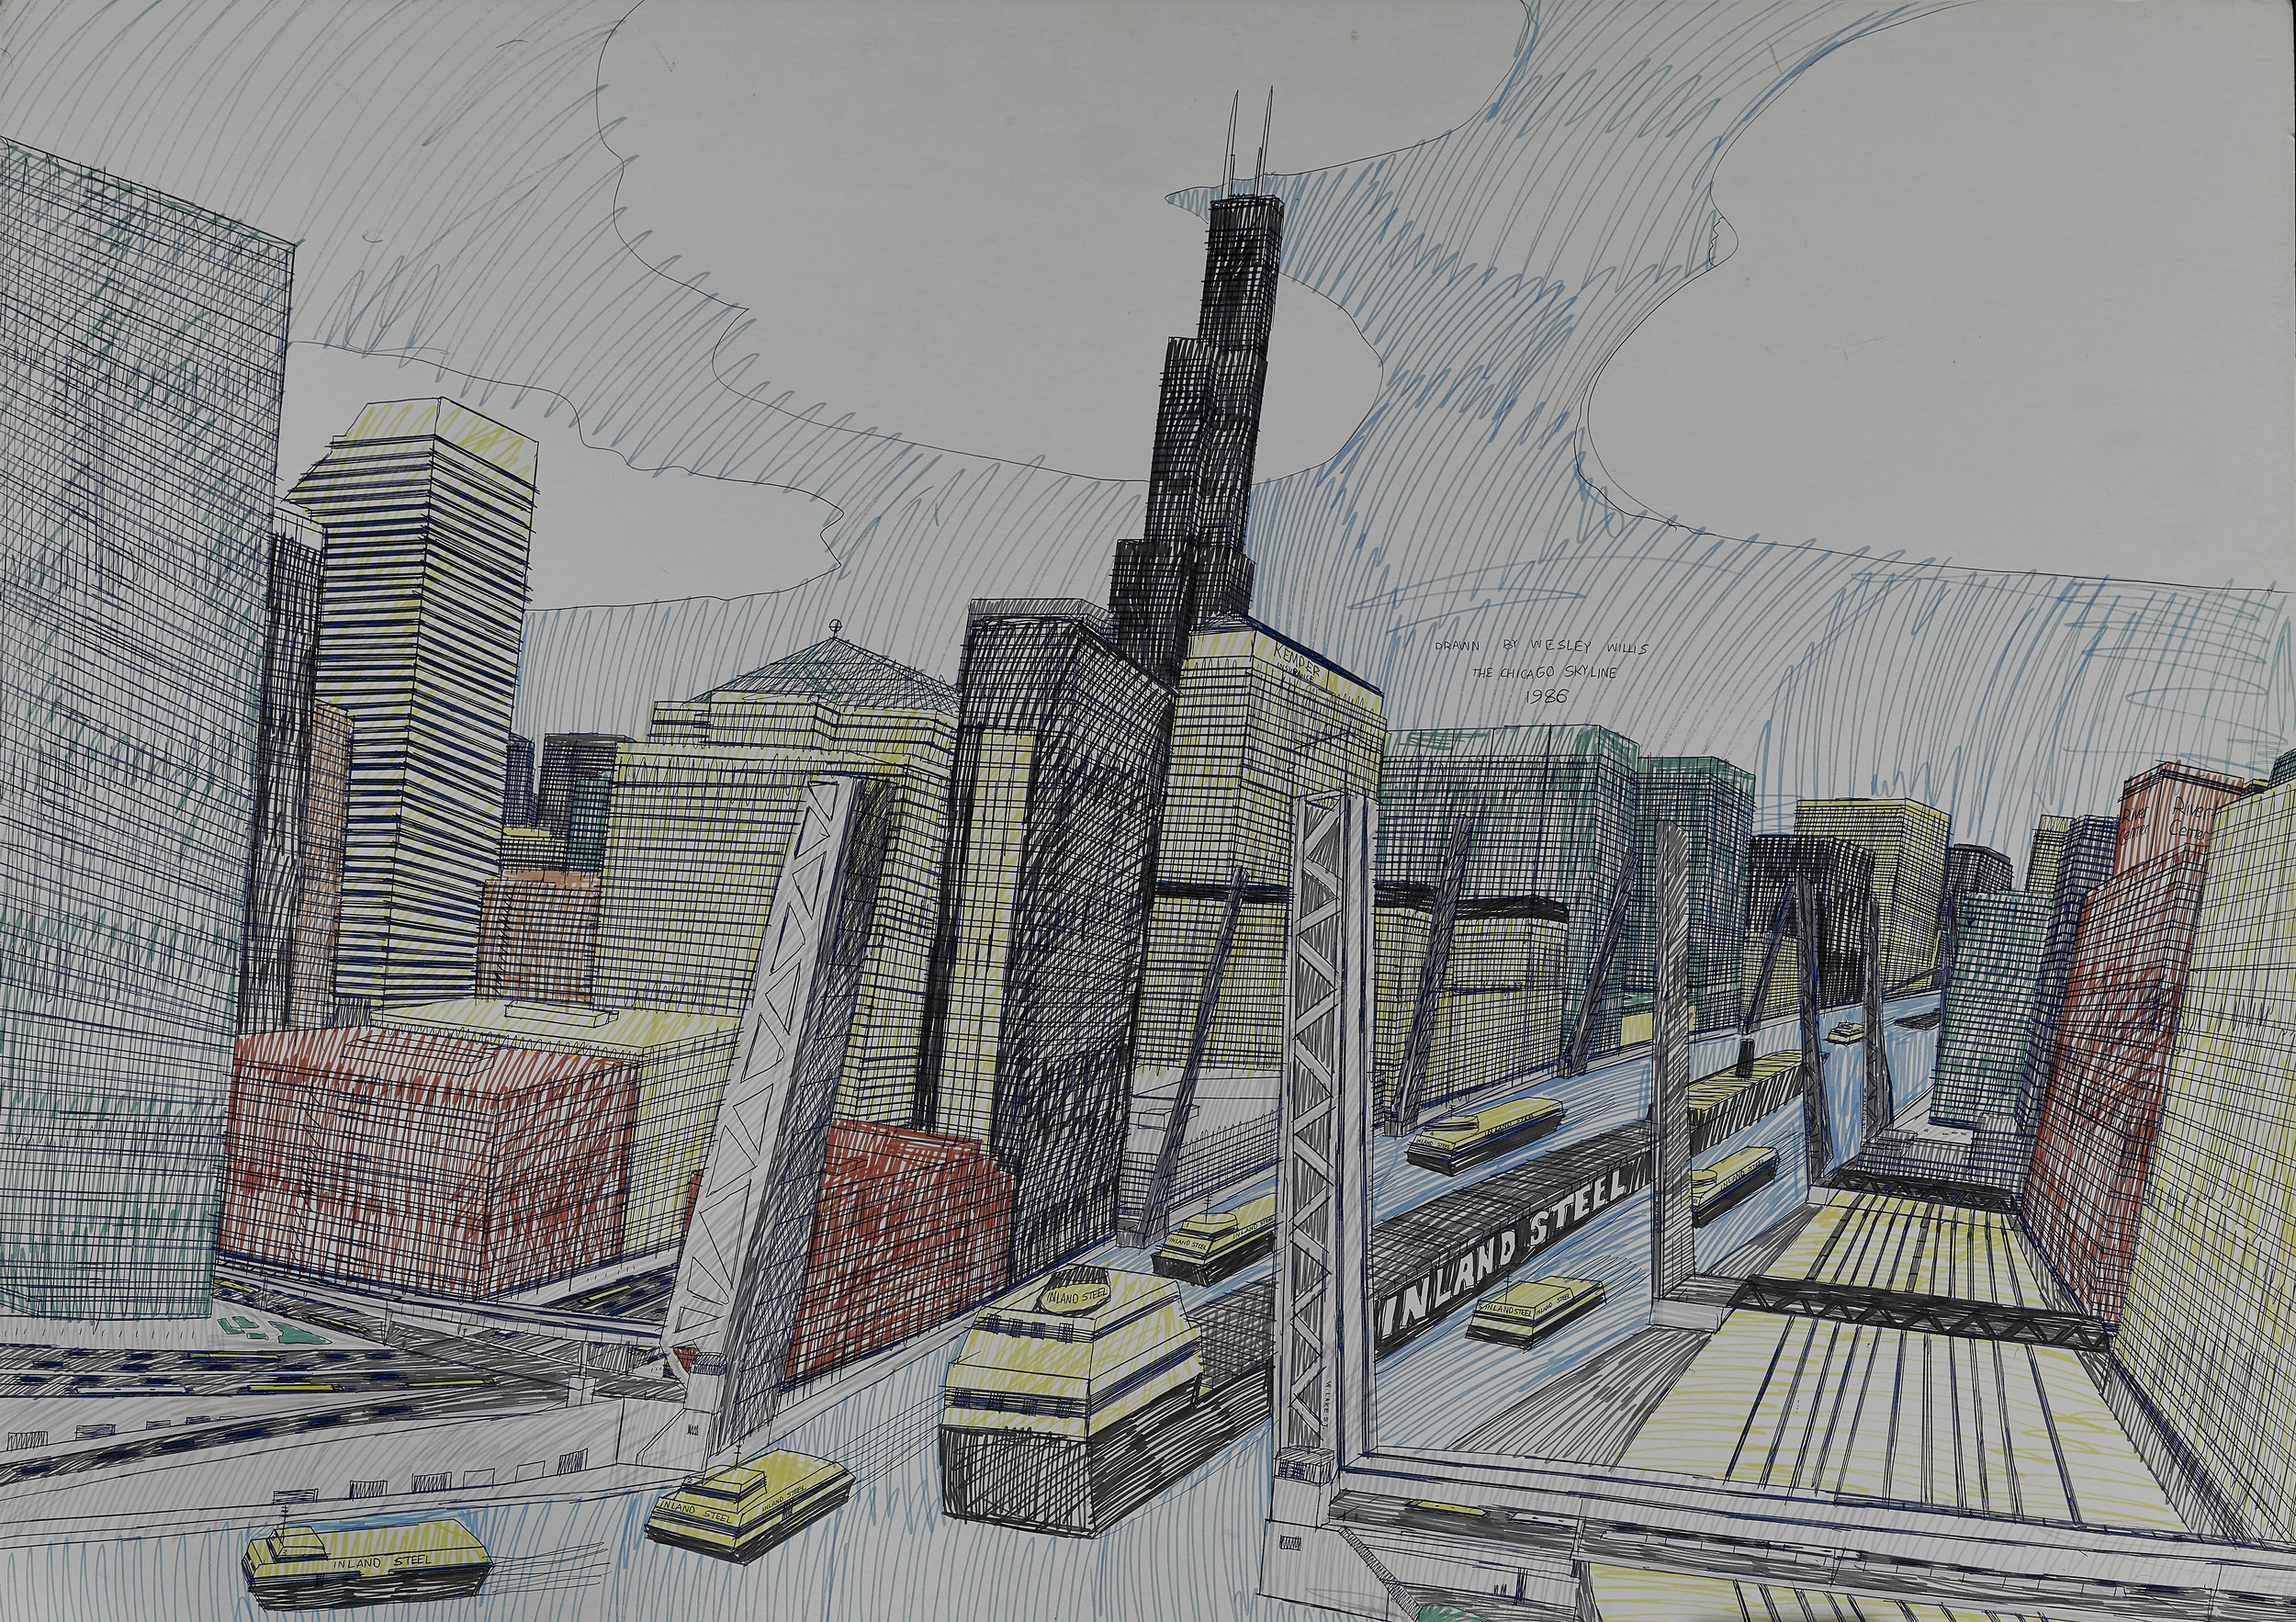 Wesley Willis (American, 1963-2003).  The Chicago Skyline, Sears Tower, Chicago River… , 1986. Ballpoint pen and felt tip pen on board, 28 x 42 in. Collection of Rolf and Maral Achilles